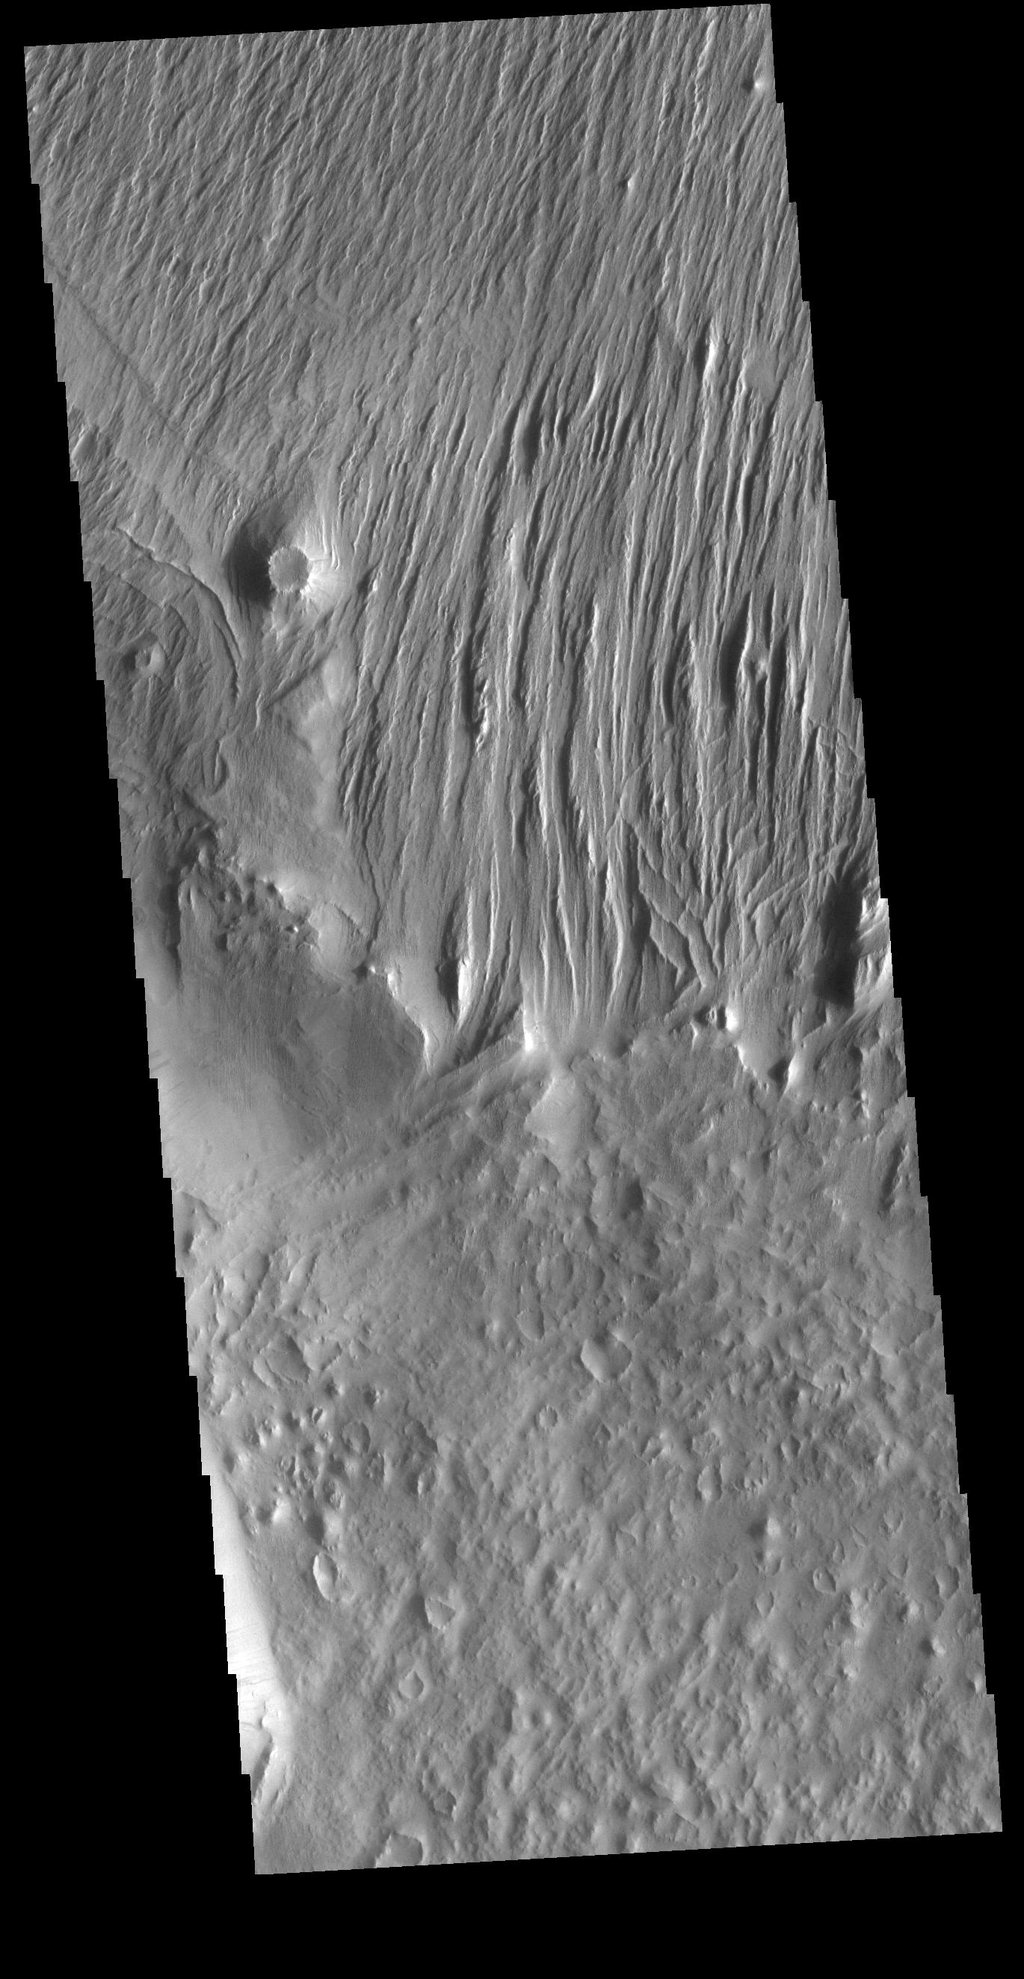 This image from NASA's Mars Odyssey shows evidence of long term wind action and erosion east of Eumenides Dorsum.